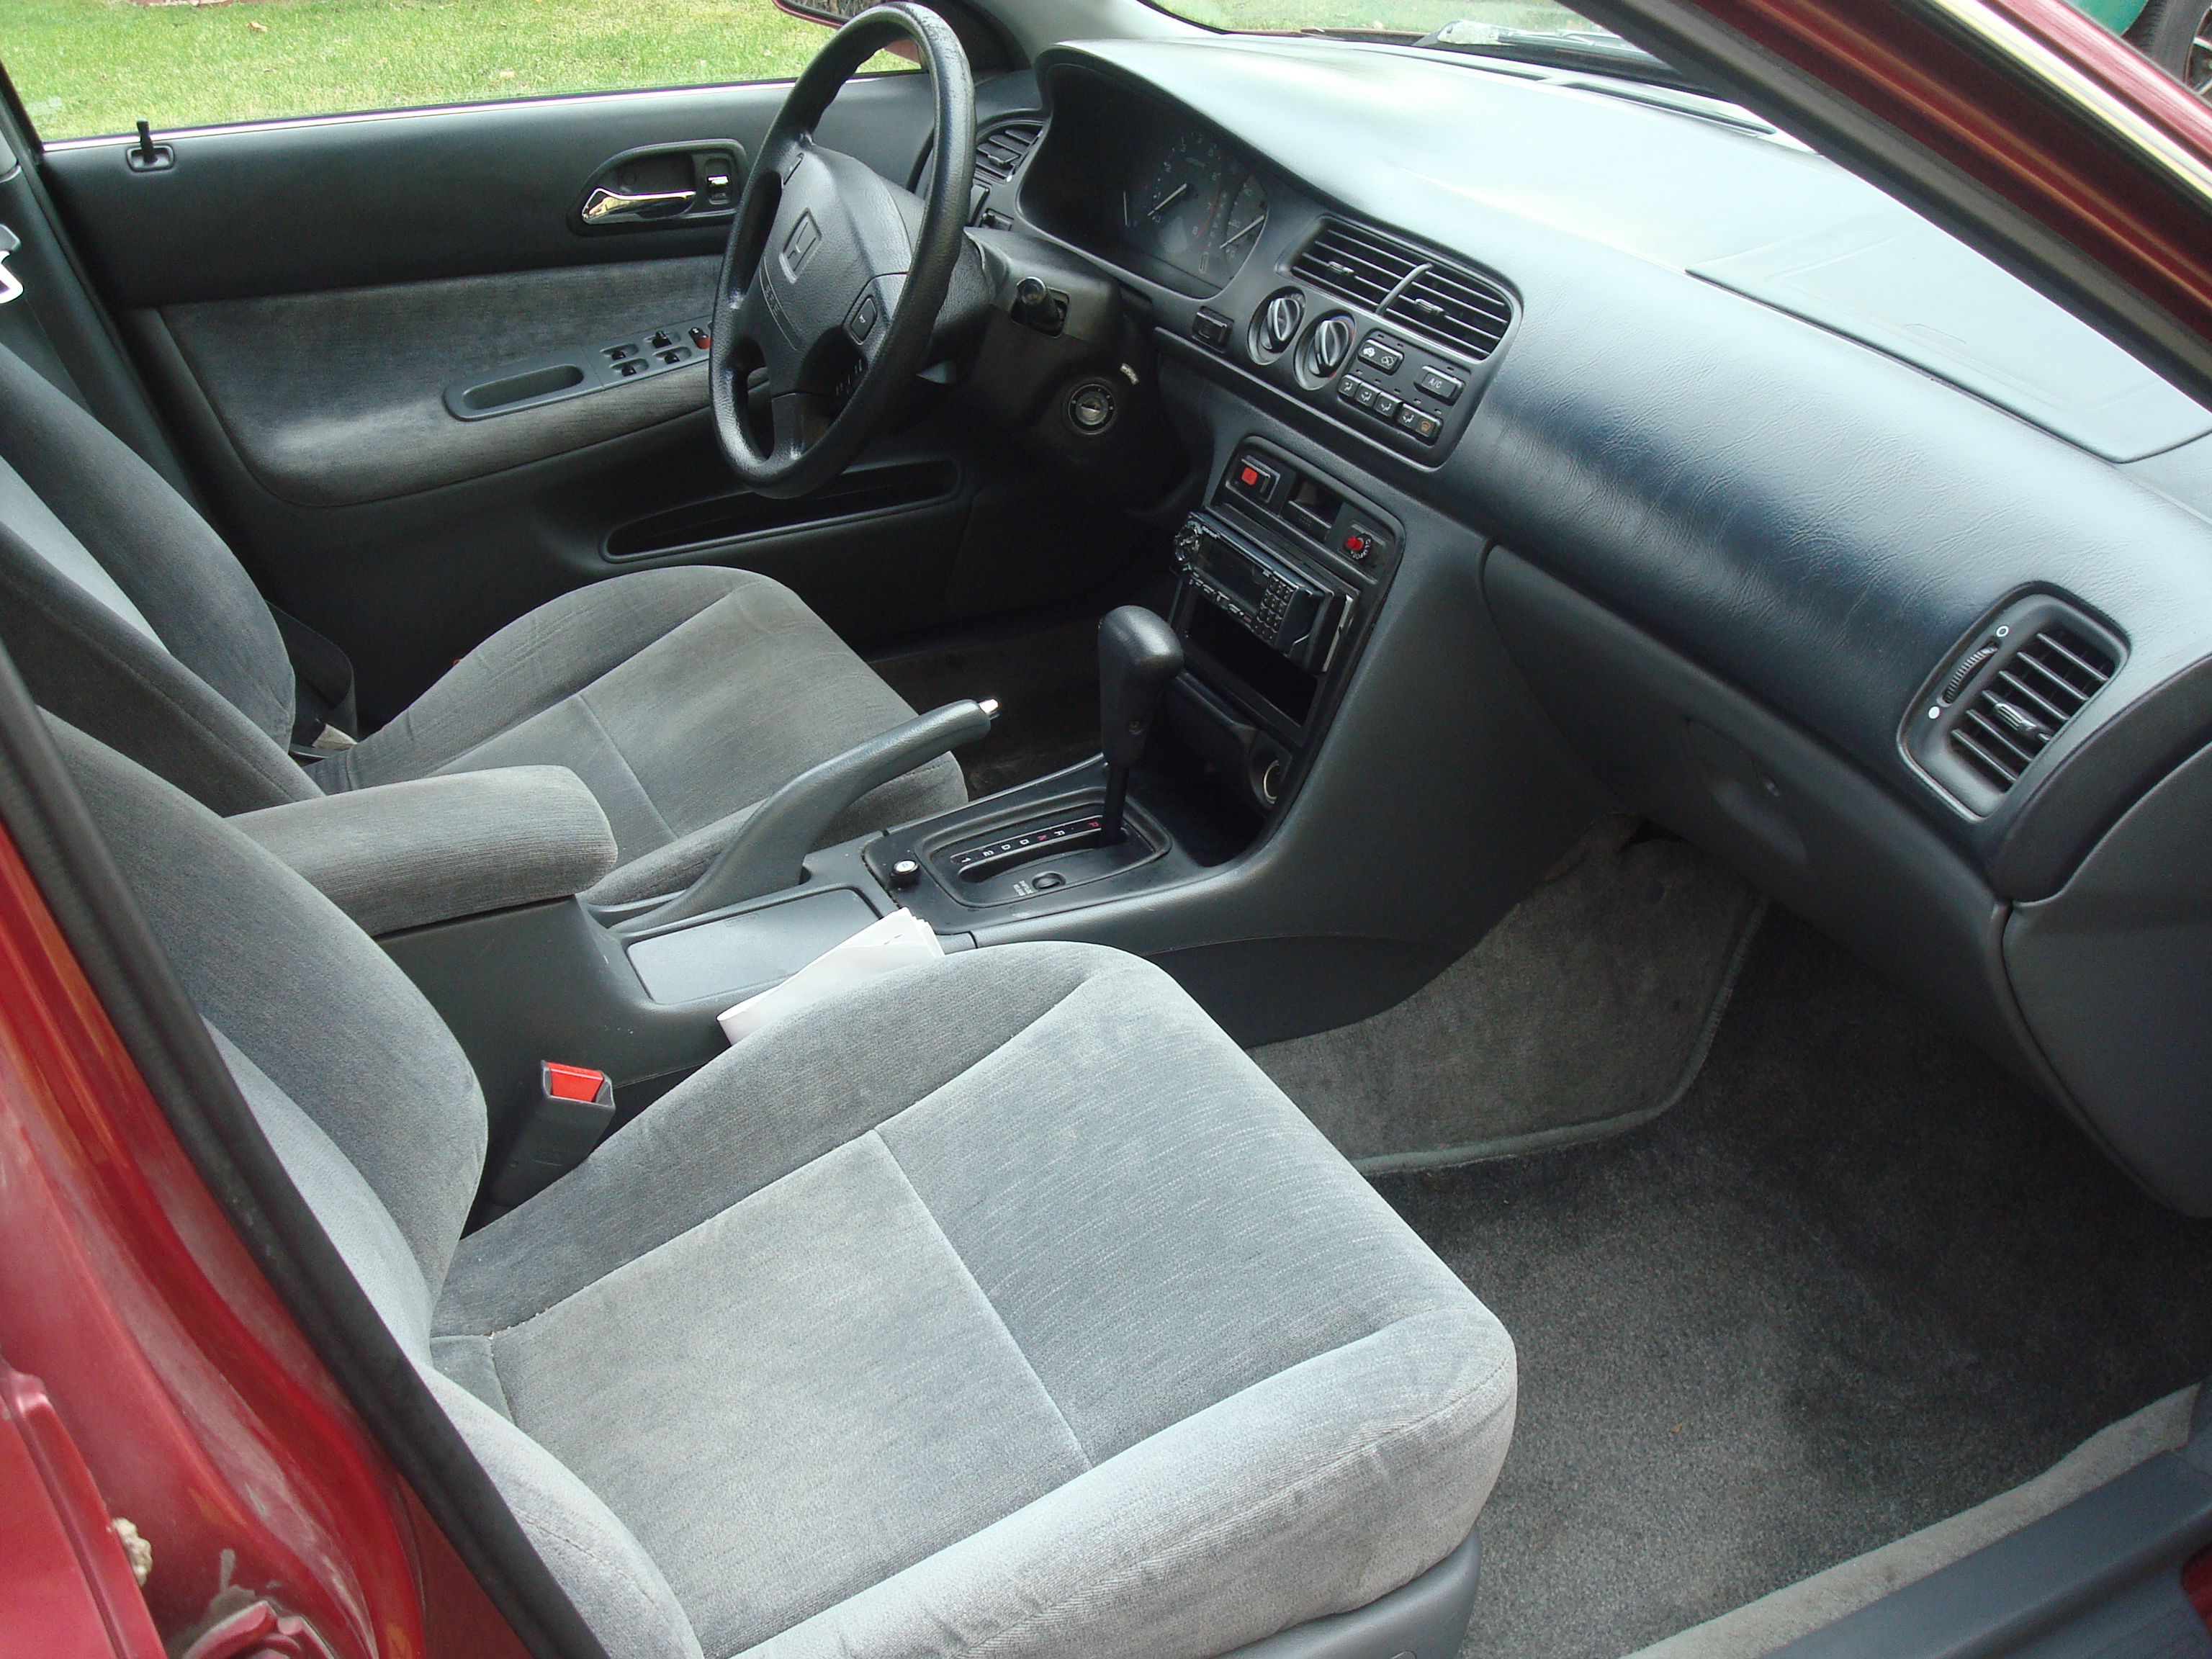 1994 Honda Accord #6 Honda Accord #6